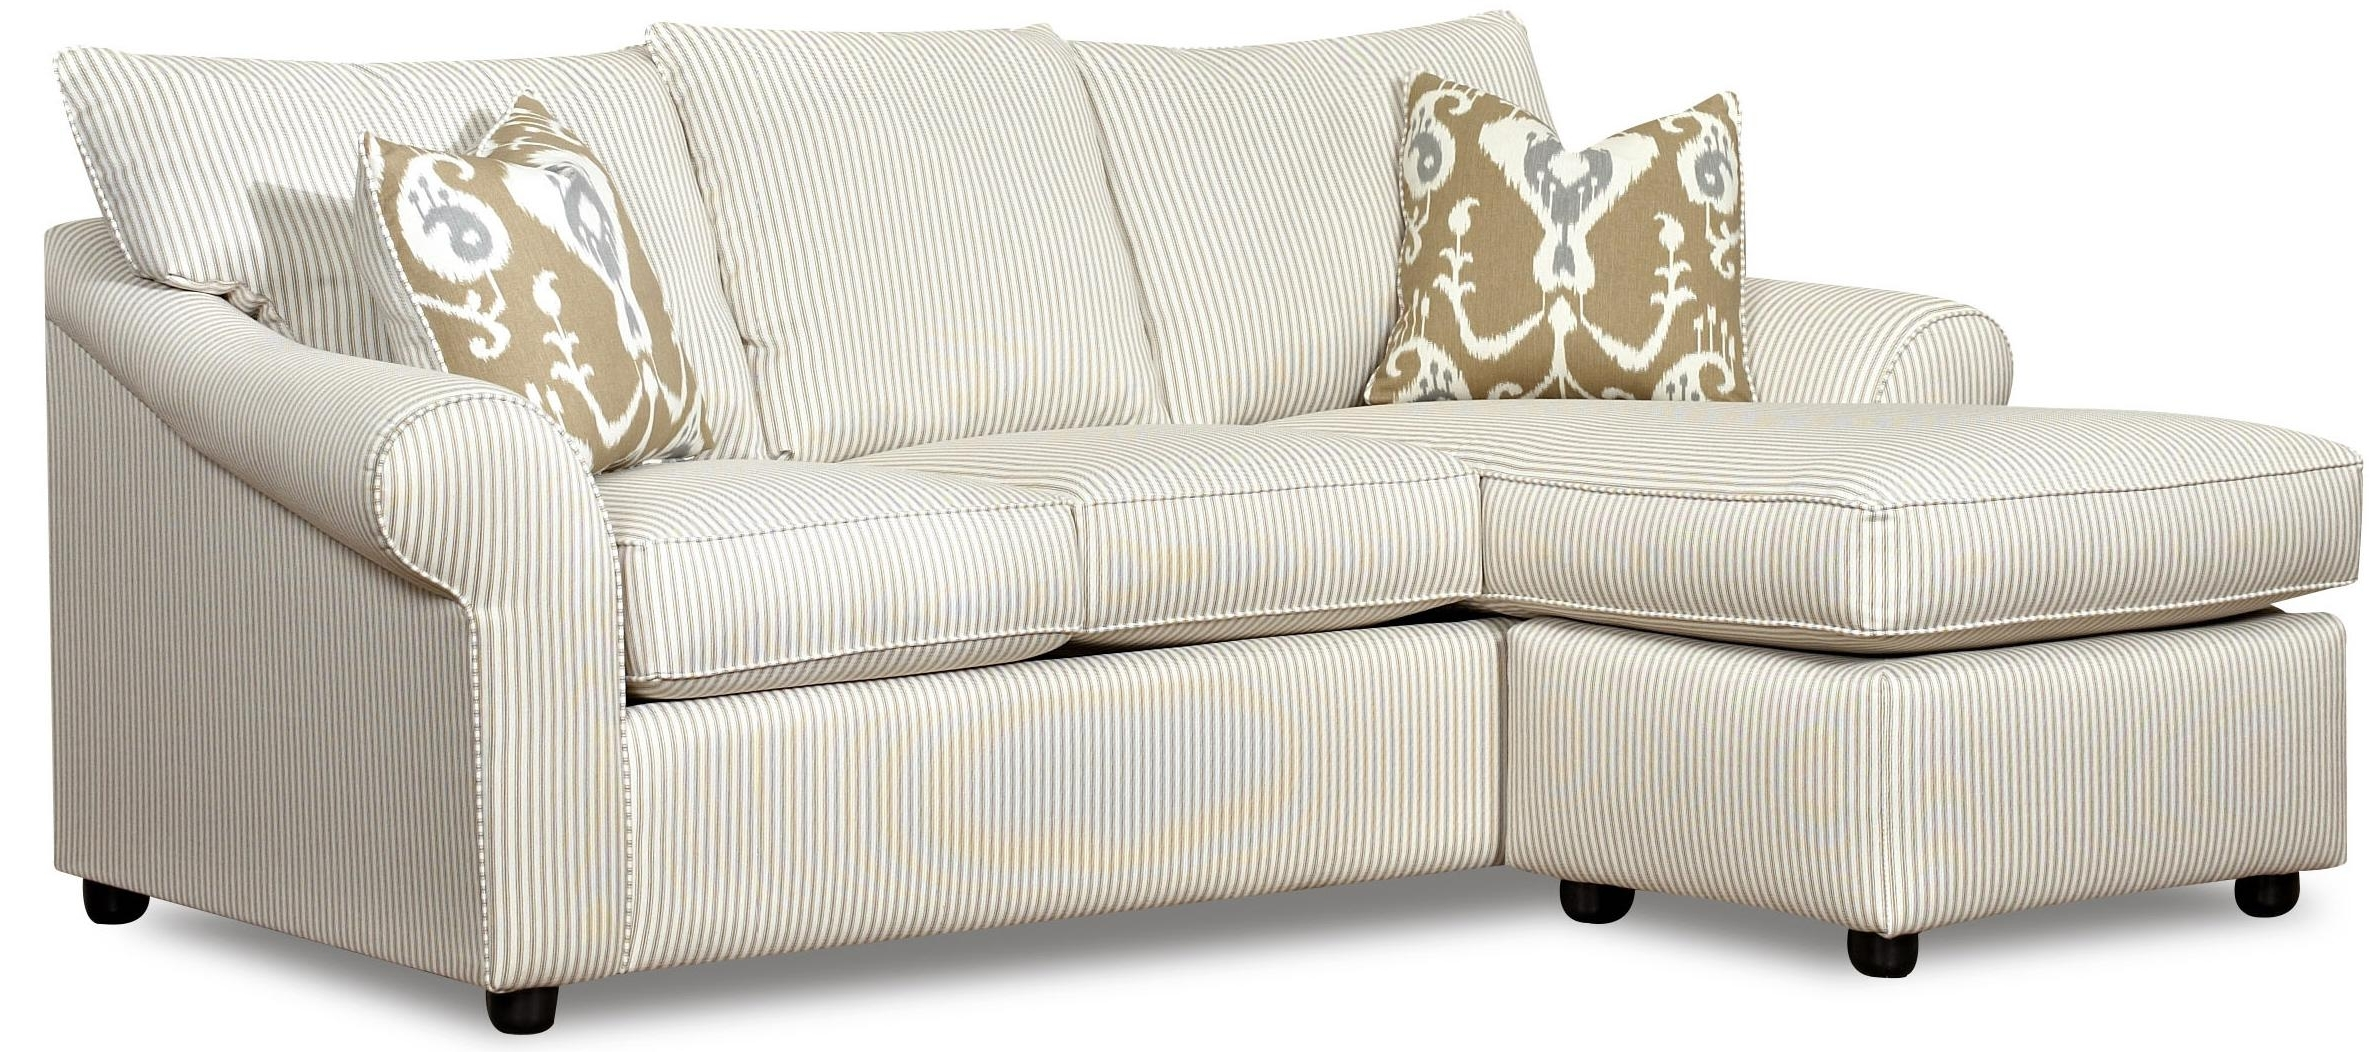 Famous Chaise Lounge Sofas Within Sofa With Reversible Chaise Loungeklaussner (View 4 of 15)